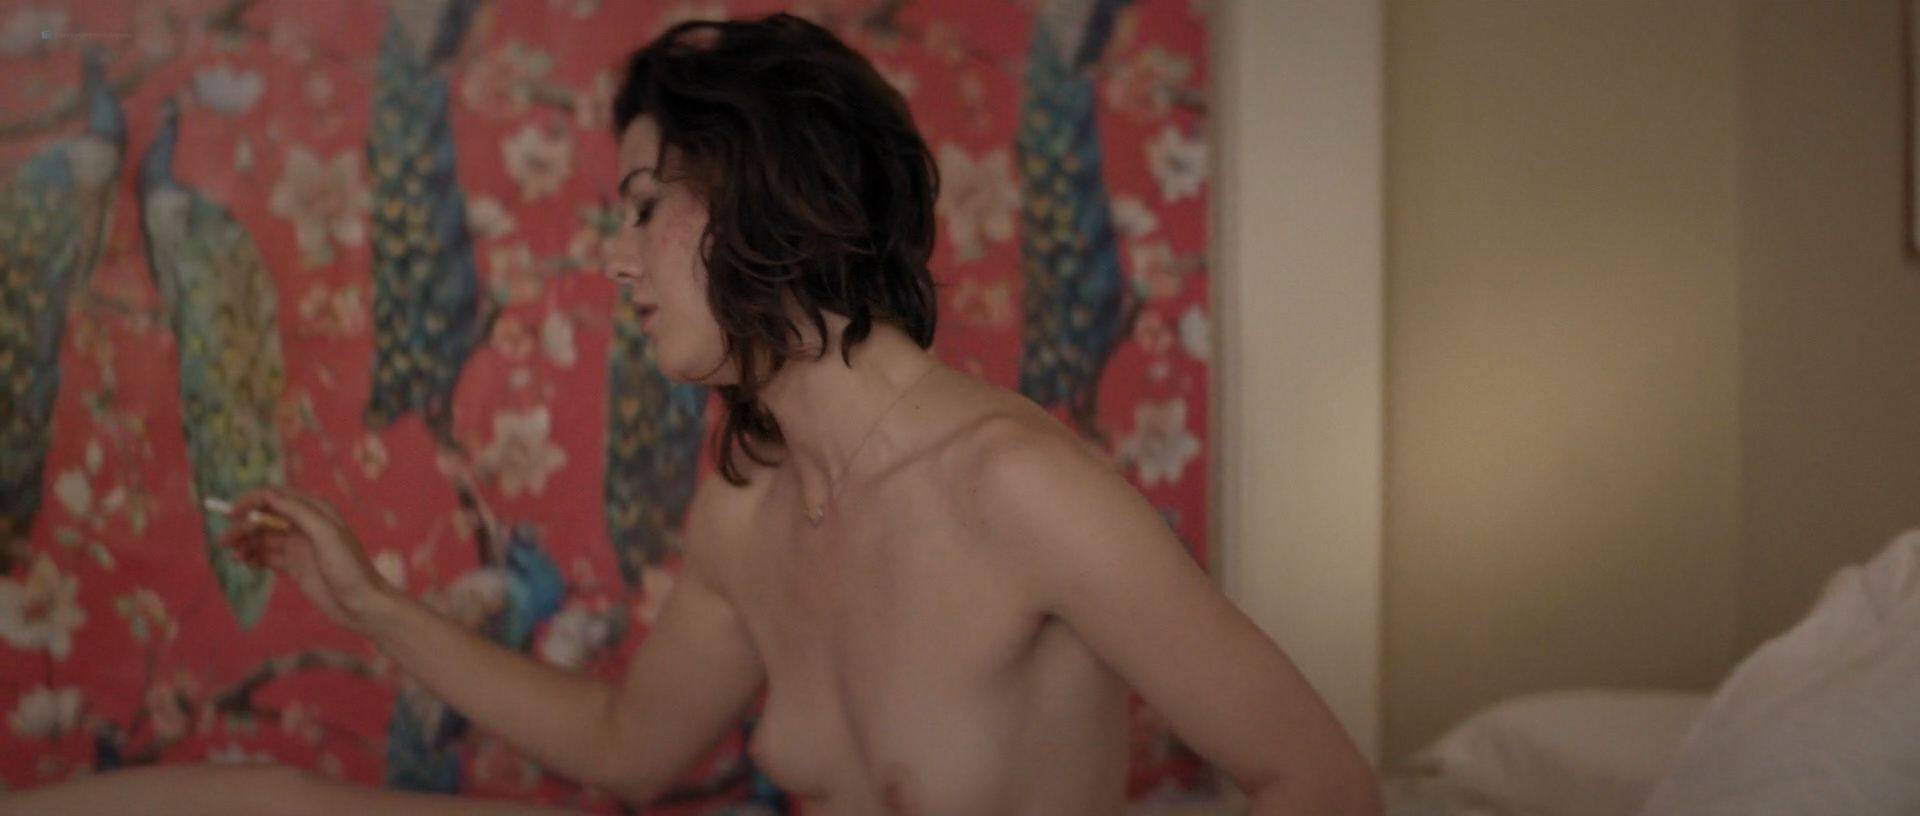 1118161722642_11_Mary-Elizabeth-Winstead-nude-topless-and-hot-All-About-Nina-2018-HD-1080p-004.jpg